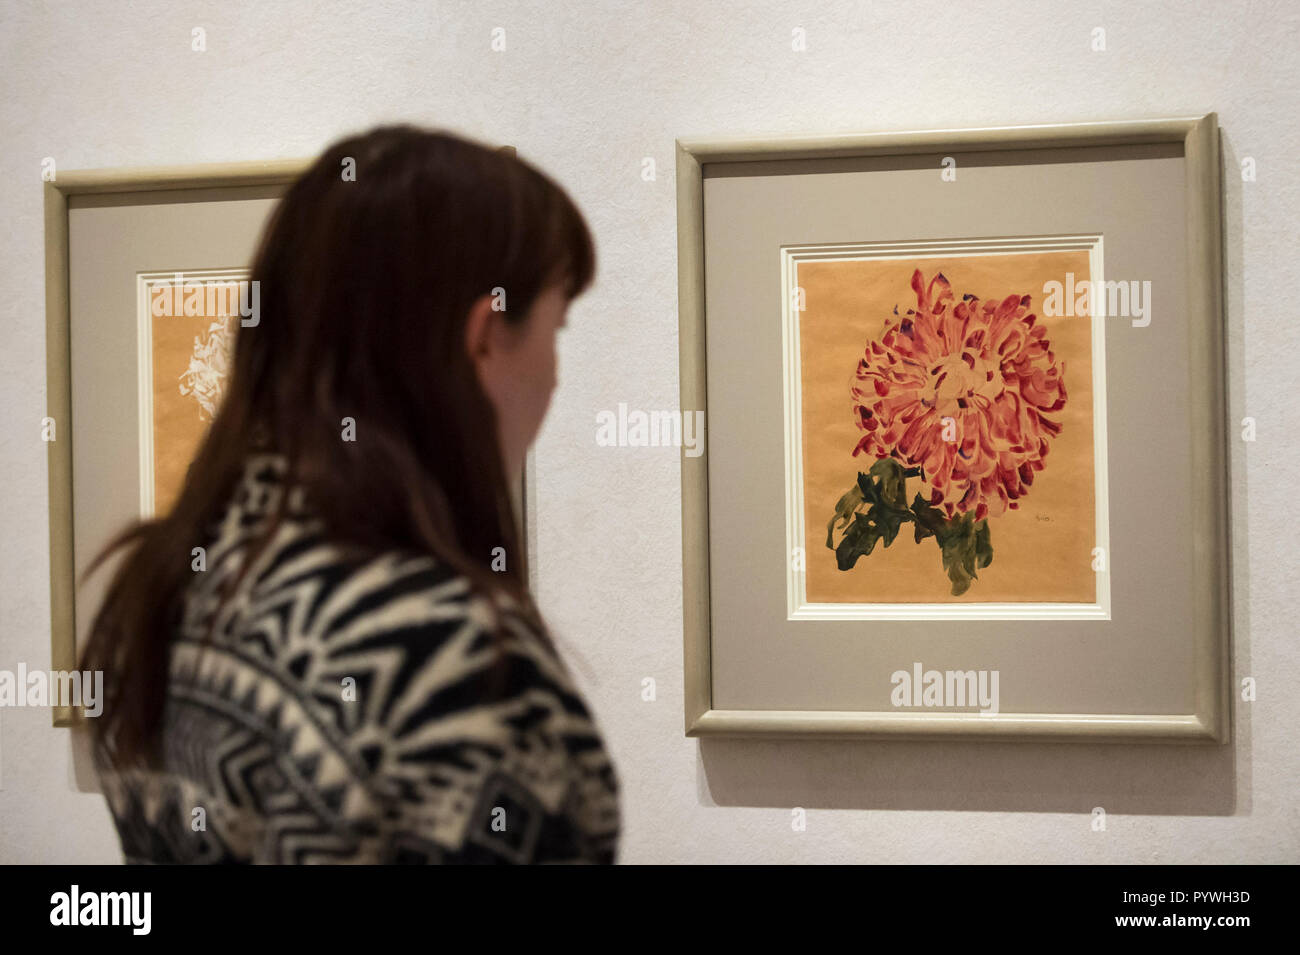 London, UK.  31 October 2018. A visitor views 'Red Chrysanthemum', 1910, by Egon Schiele. Preview of 'Klimt / Schiele:  Drawings from the Albertina Museum,Vienna' exhibition at the Royal Academy.  Over 100 works on paper are on display in an exhibition which marks the centenary of the deaths of the two most celebrated and pioneering figures of early twentieth-century art.  The show runs 4 November to 3 February 2019. Credit: Stephen Chung / Alamy Live News - Stock Image